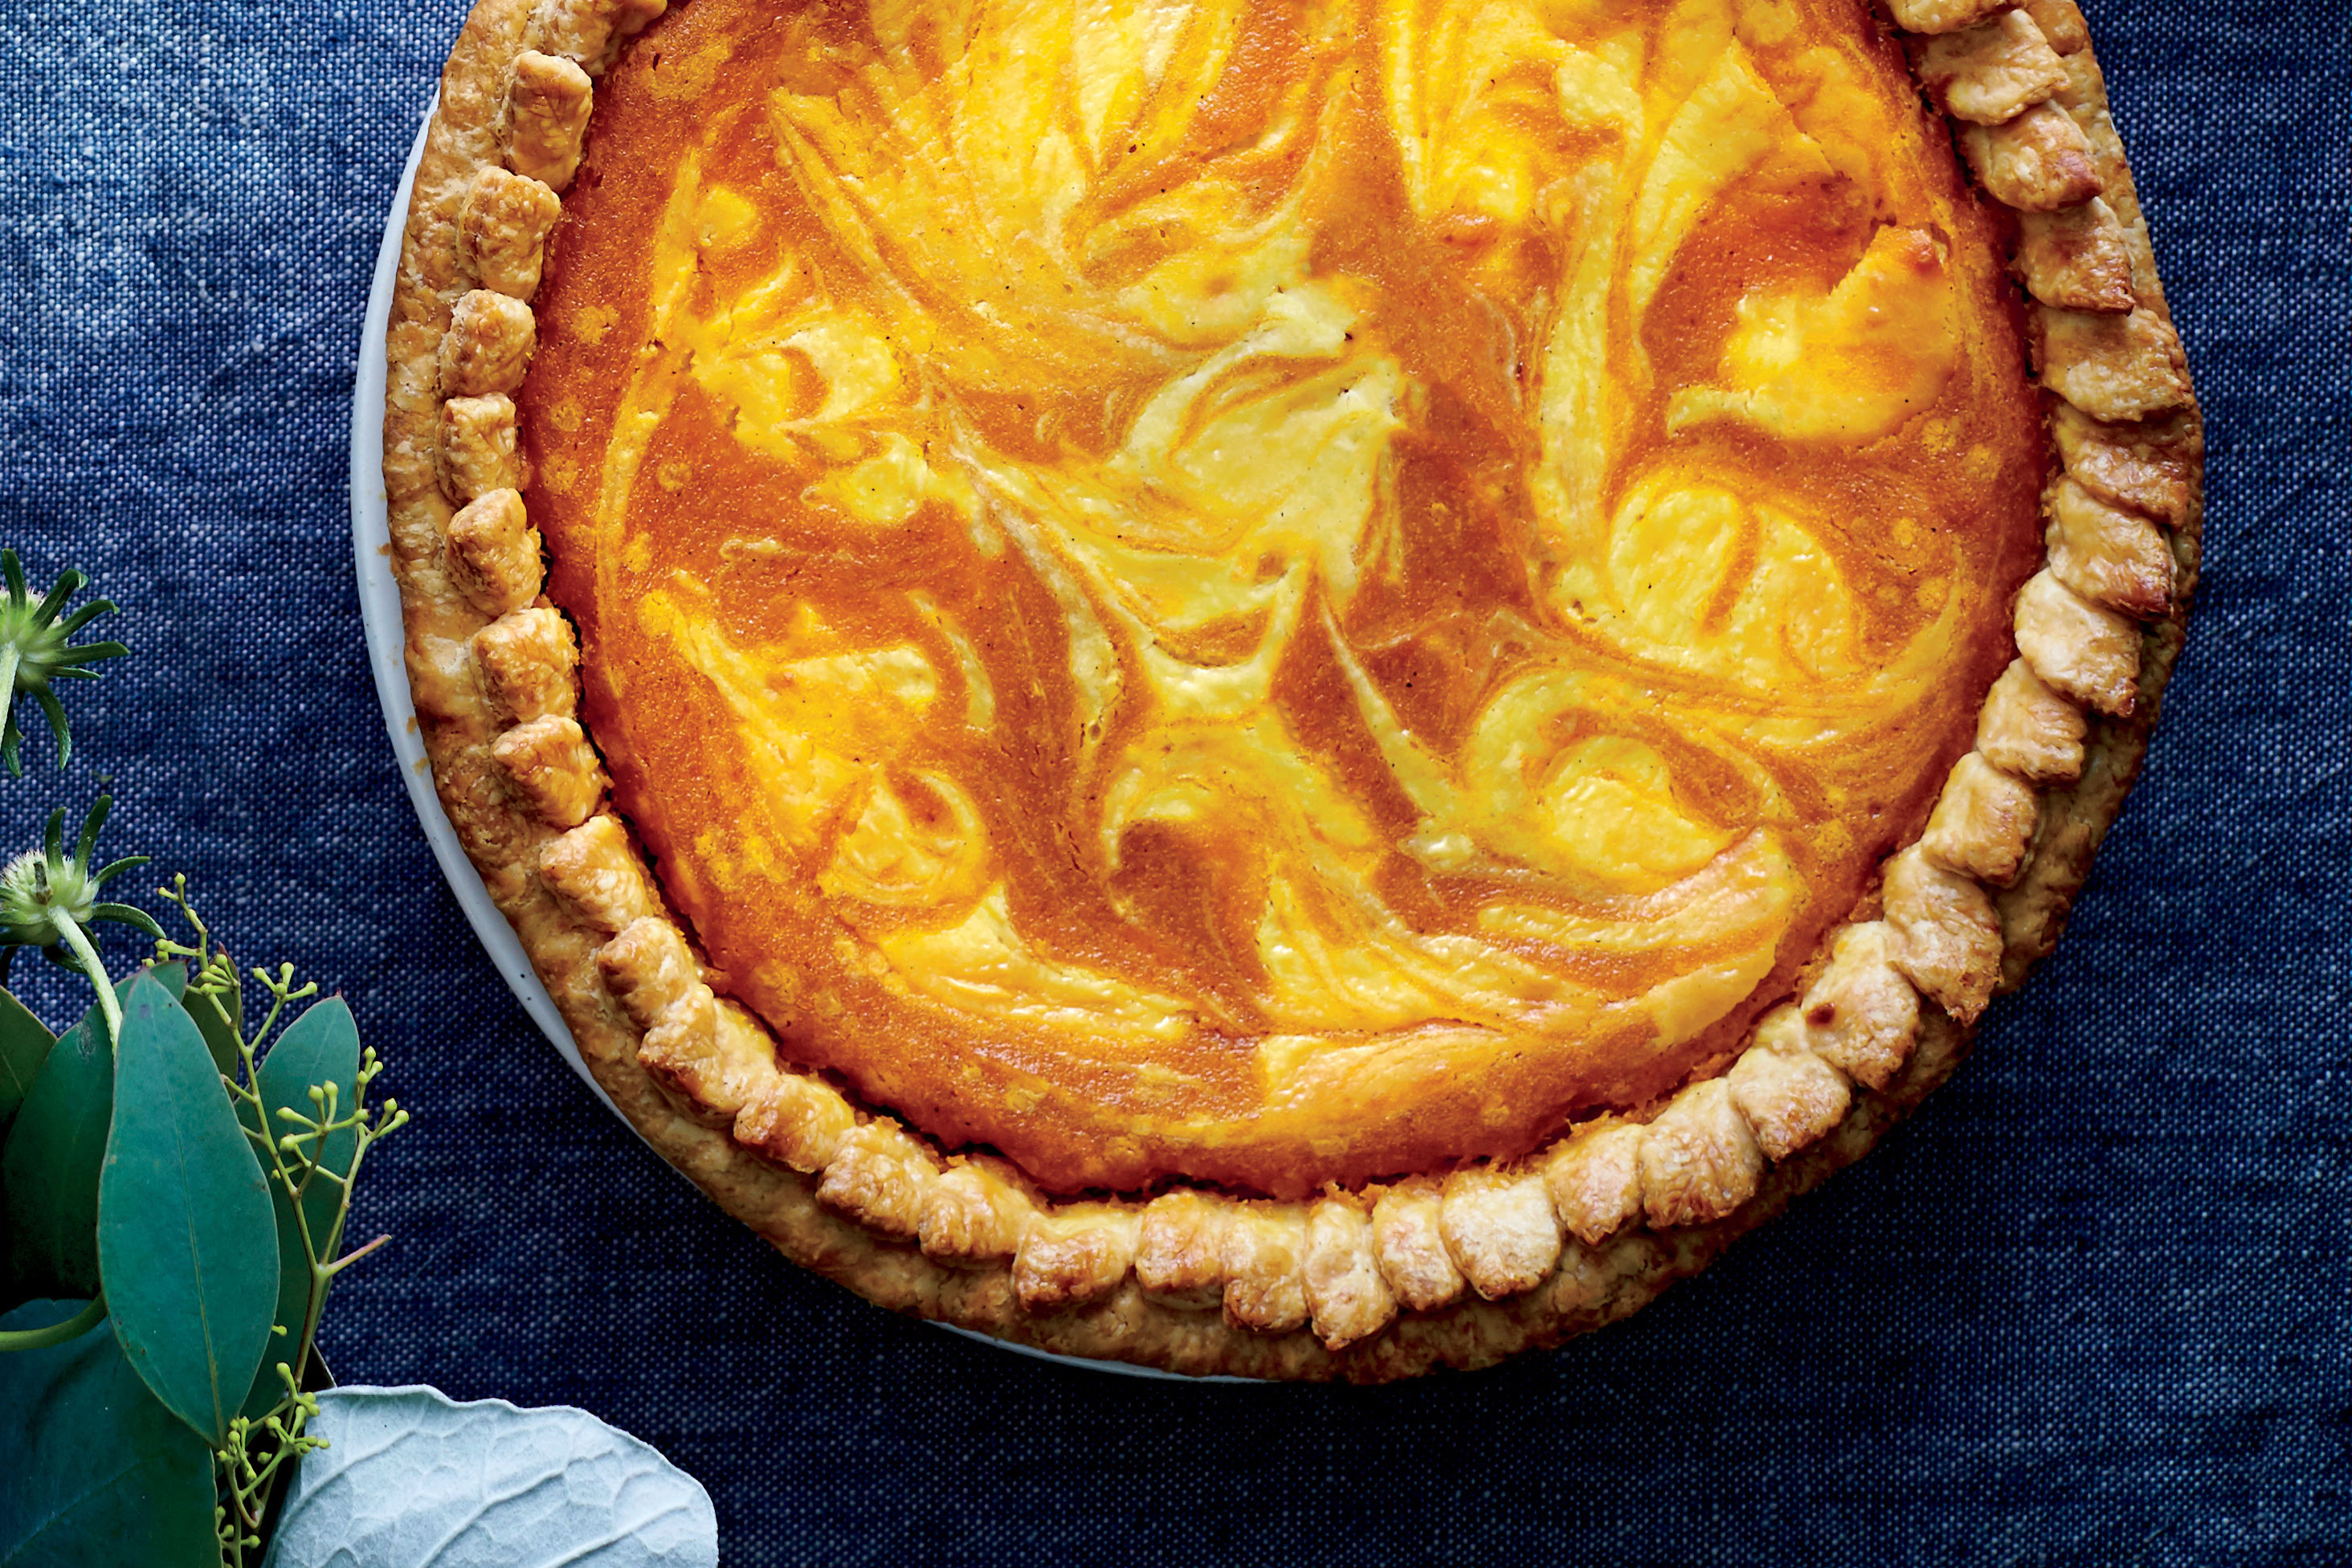 How Chess Pie Became the Ultimate Pantry Pie